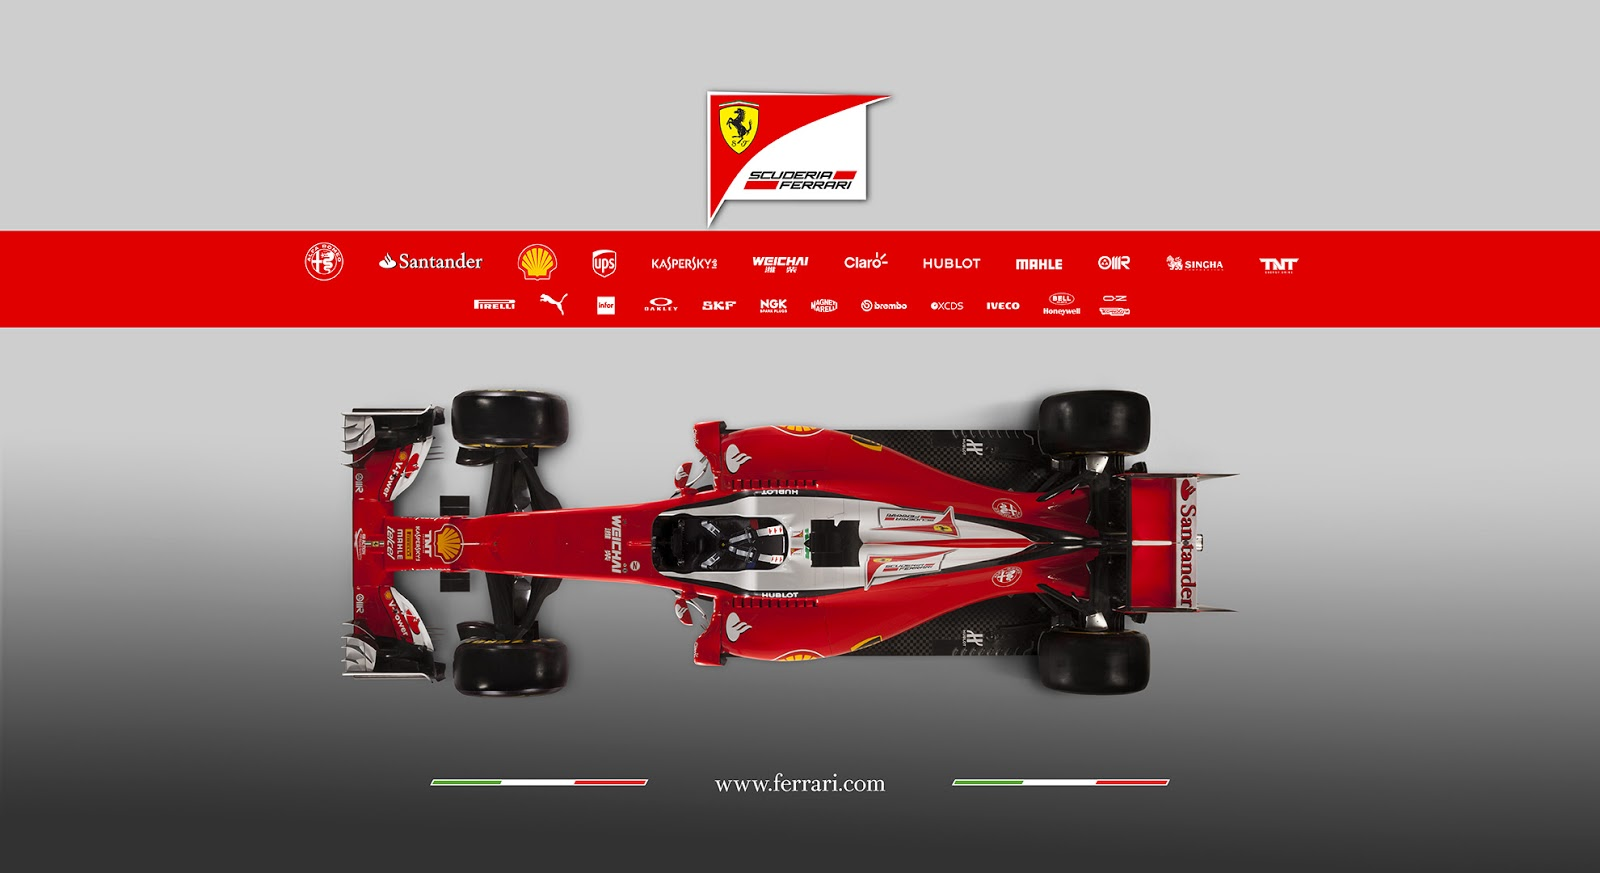 Ferrari Sf16 H 2016 F1 Wallpaper Kfzoom